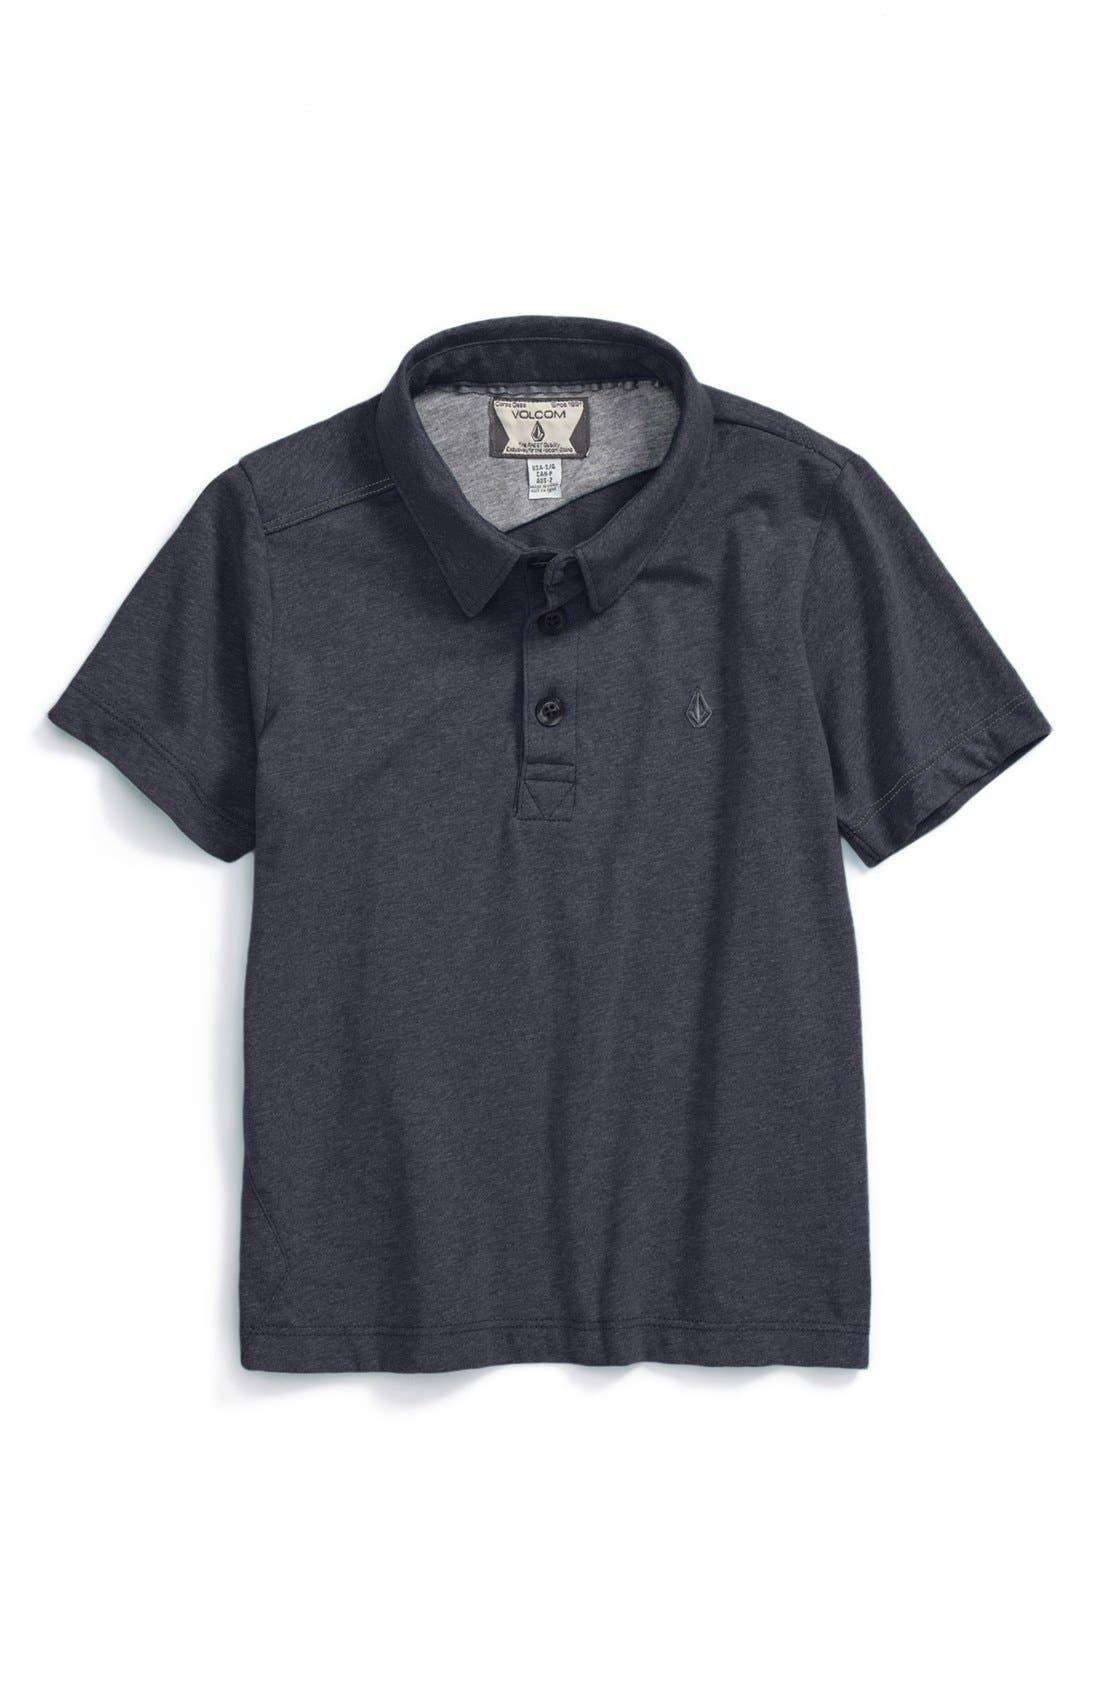 Alternate Image 1 Selected - Volcom 'Blackout' Polo (Toddler Boys)